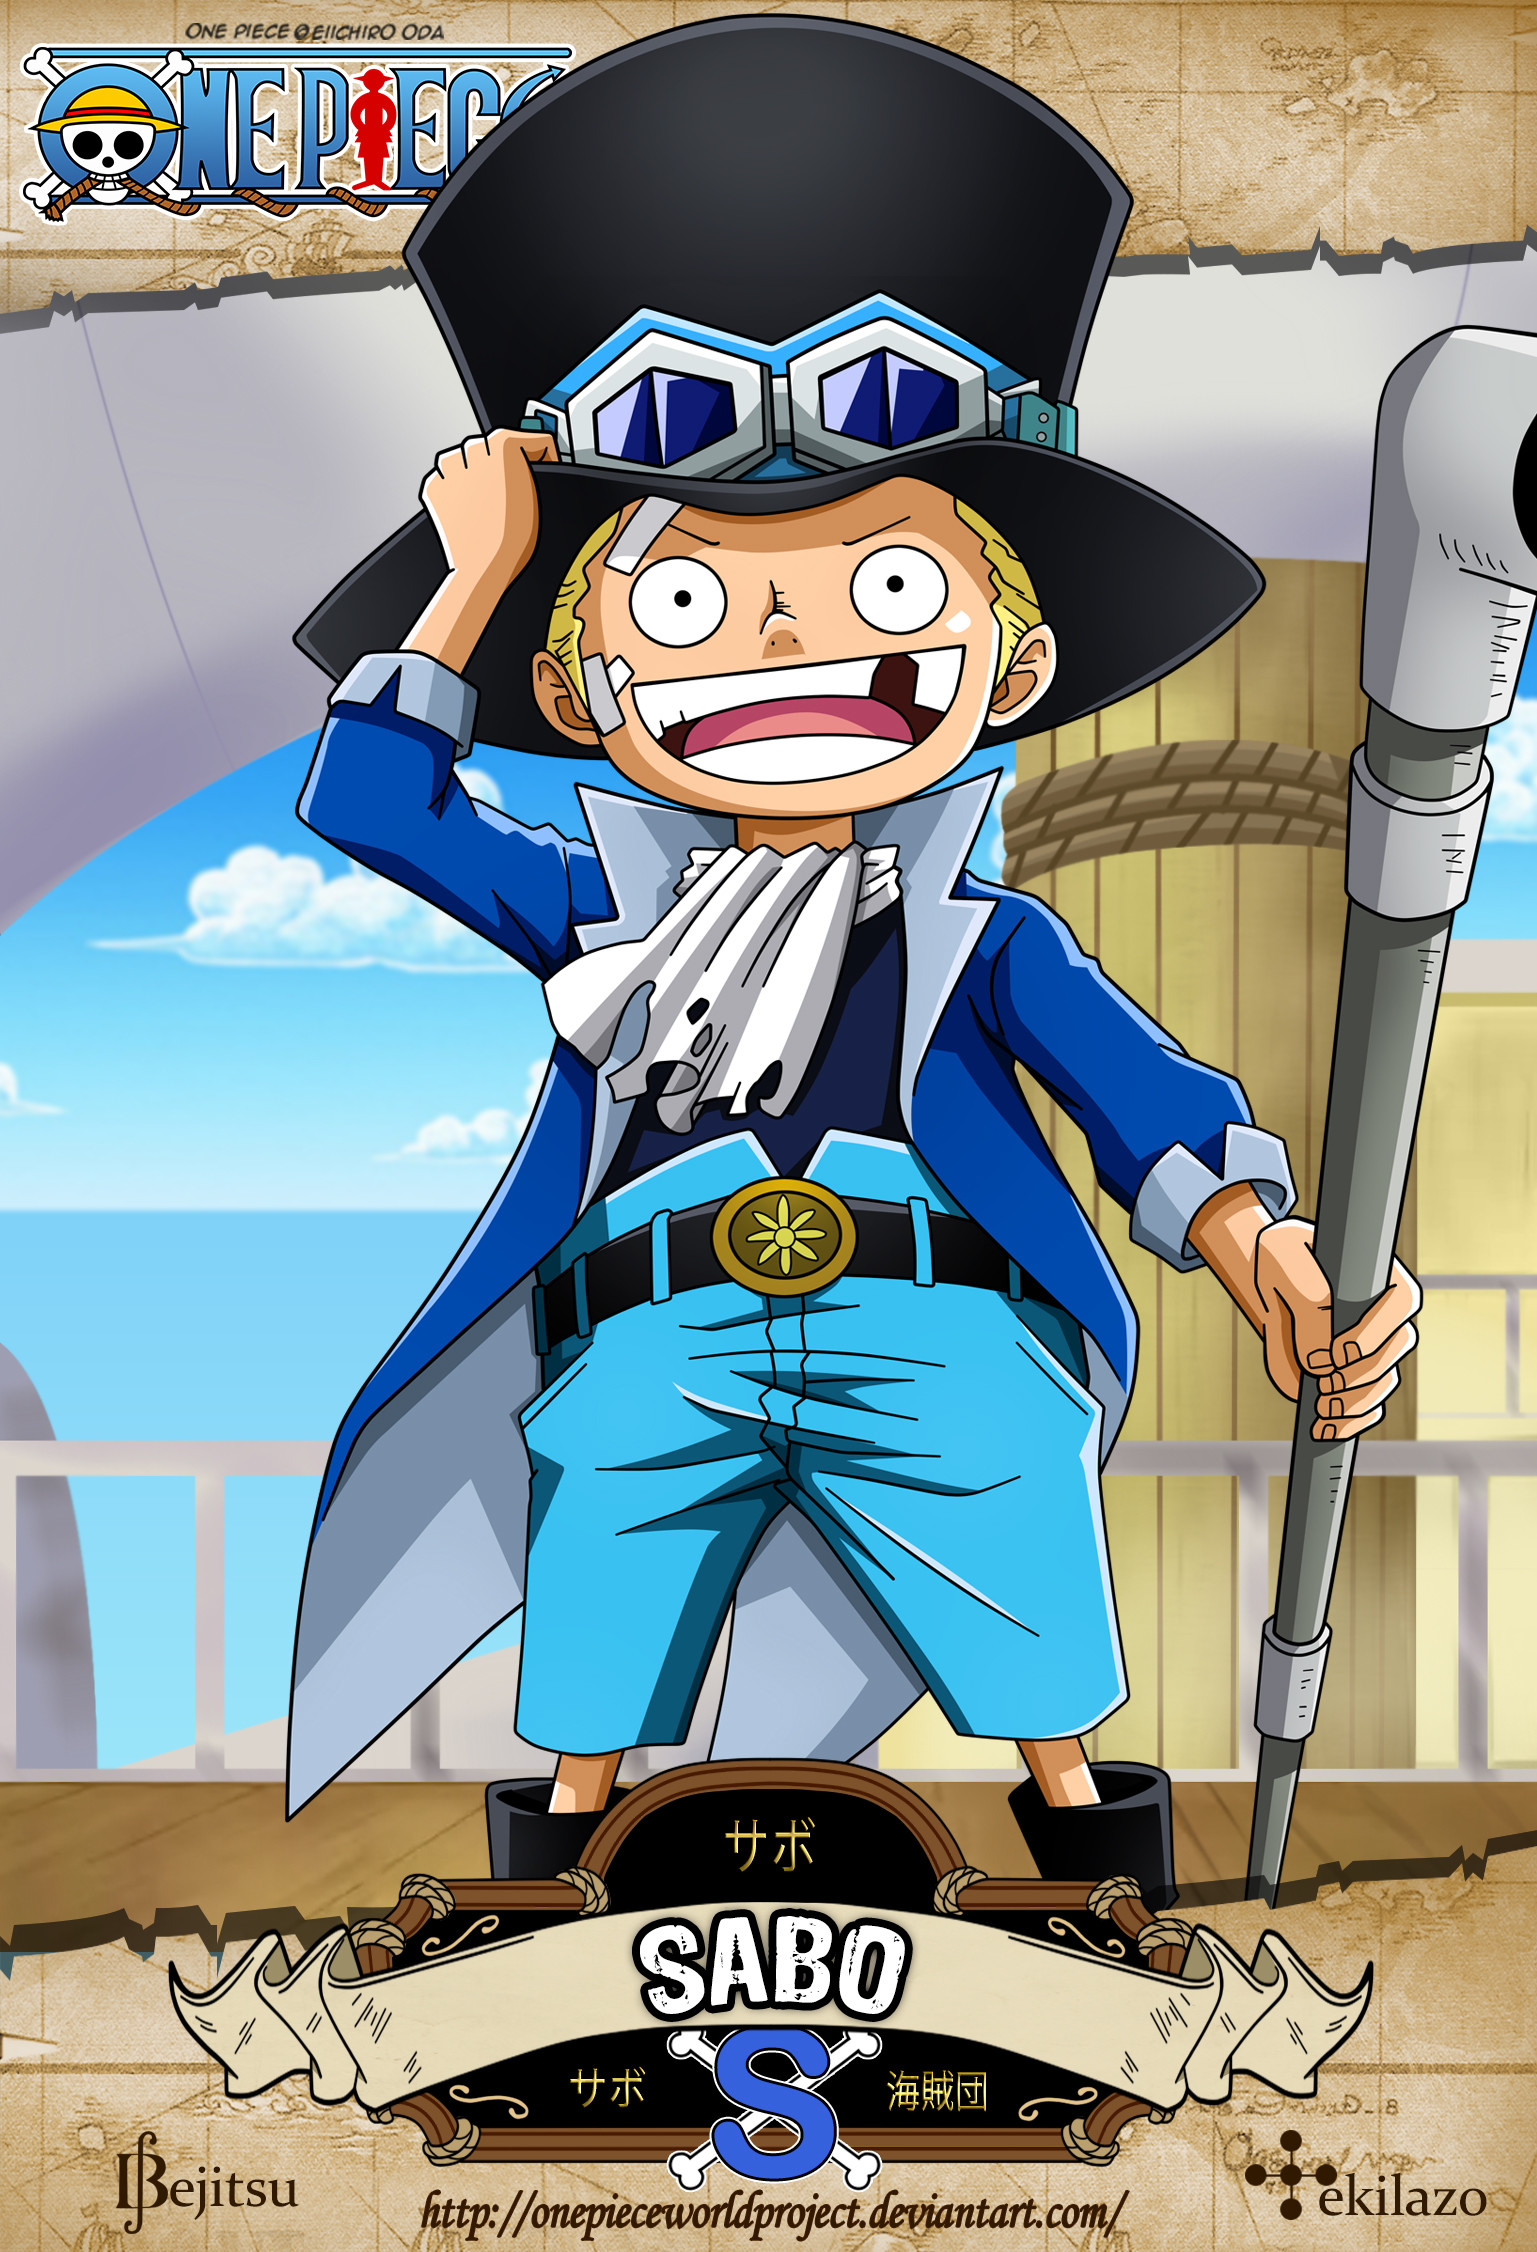 1537x2252 One Piece - Sabo by OnePieceWorldProject One Piece - Sabo by  OnePieceWorldProject